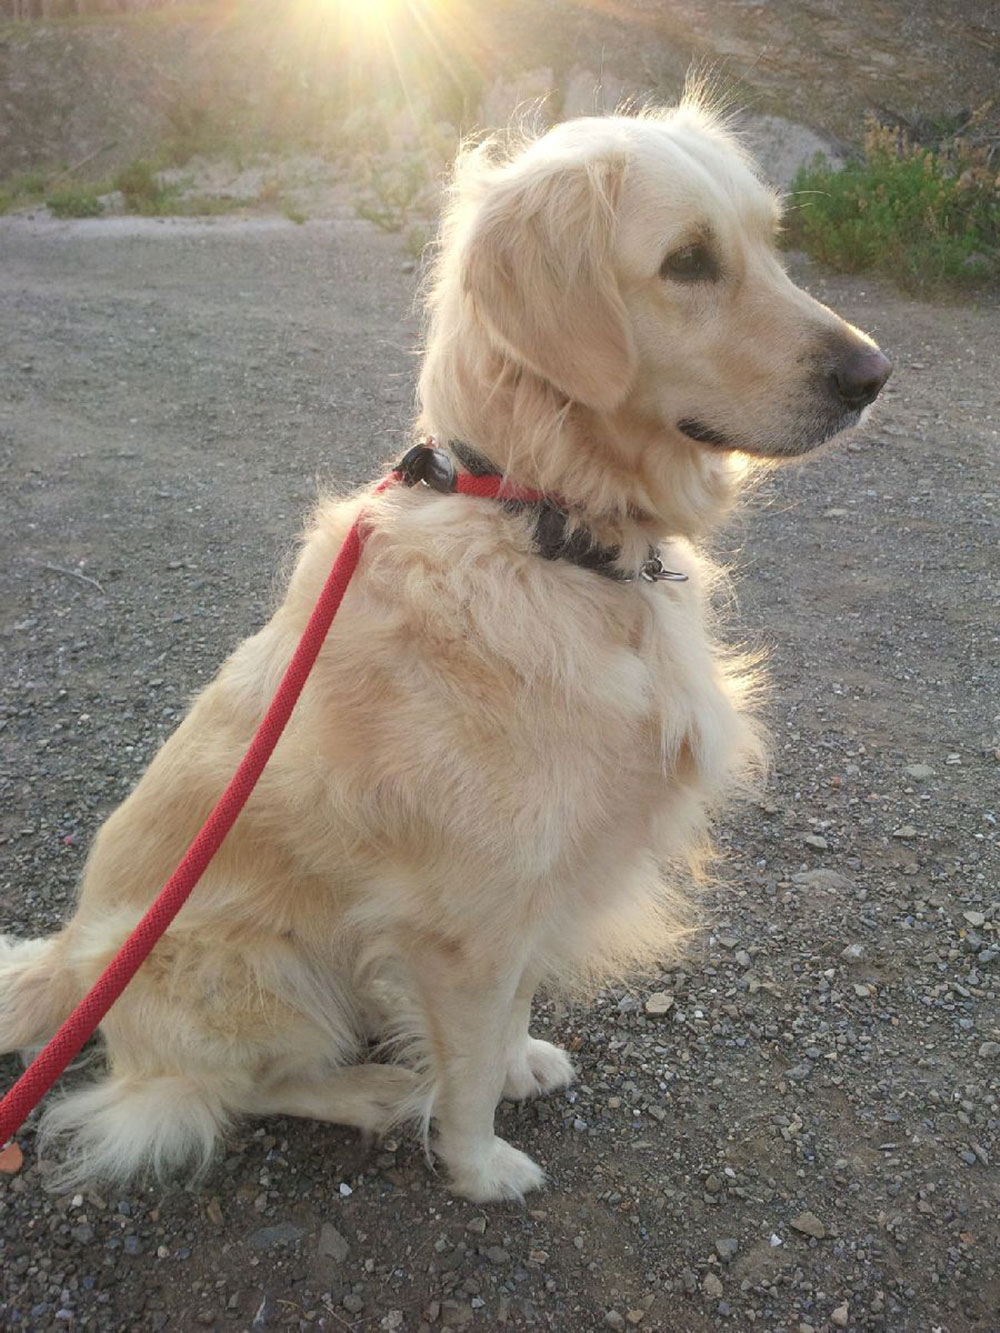 Rubia enjoying an early walk in the morning sunshine